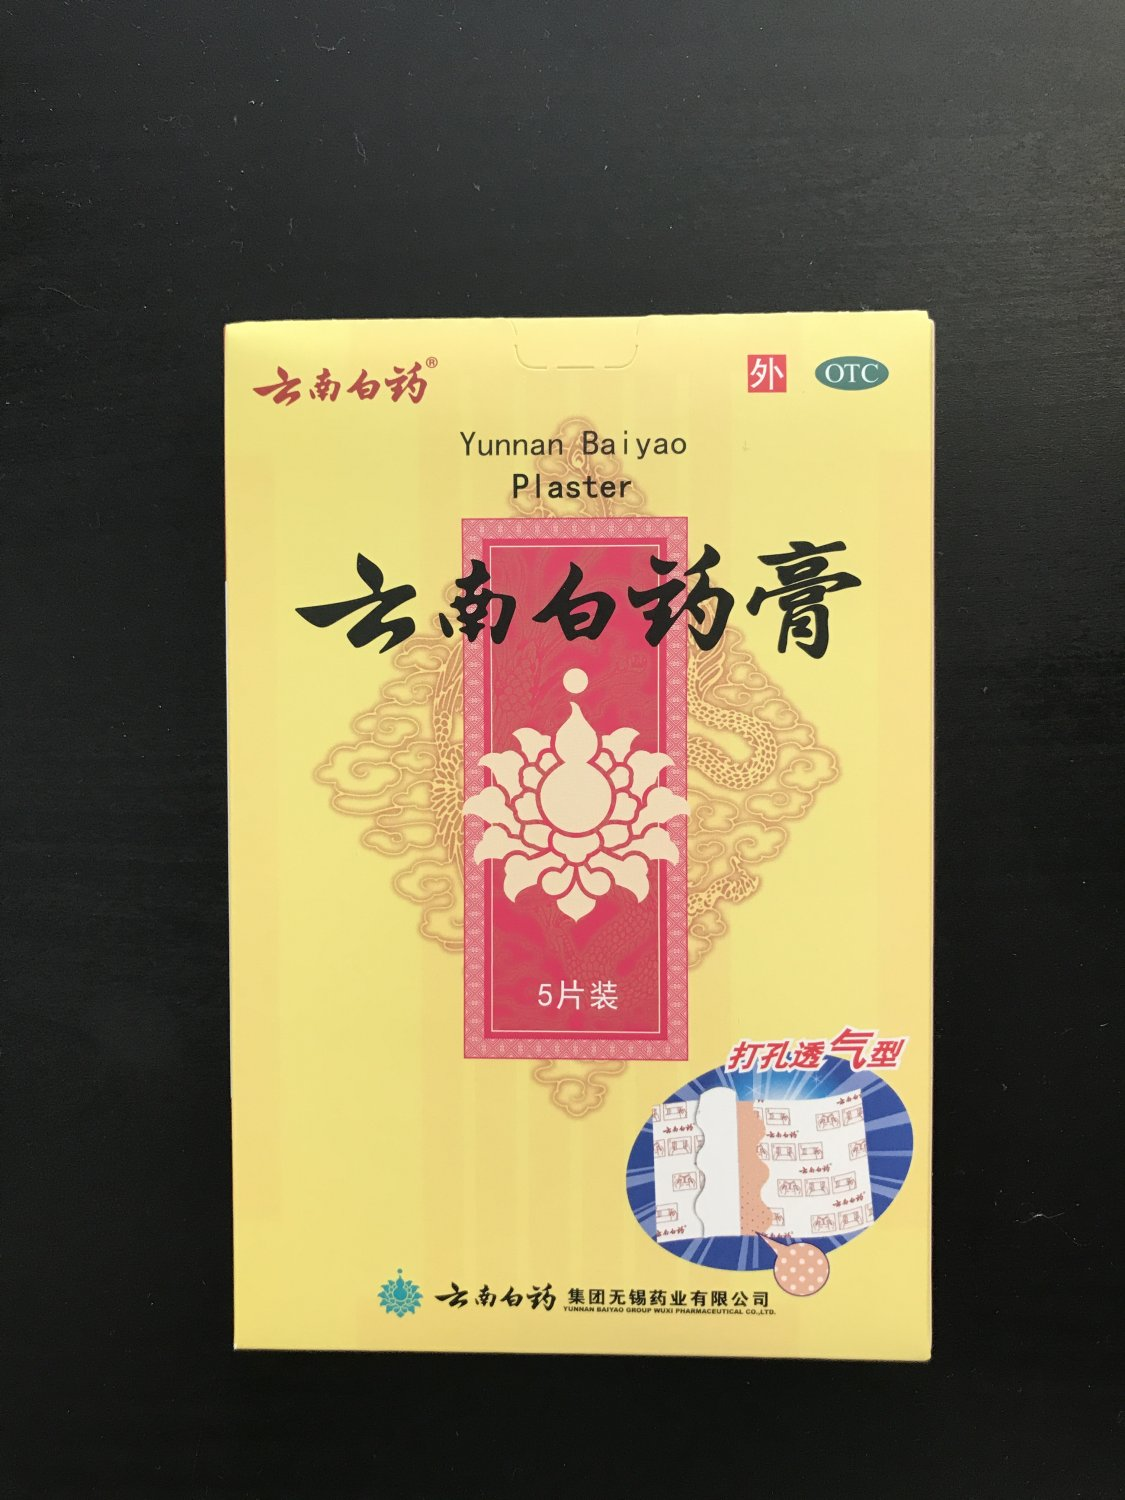 Yunnan Baiyao External Analgesic Plaster 50 Patches (10 Box)